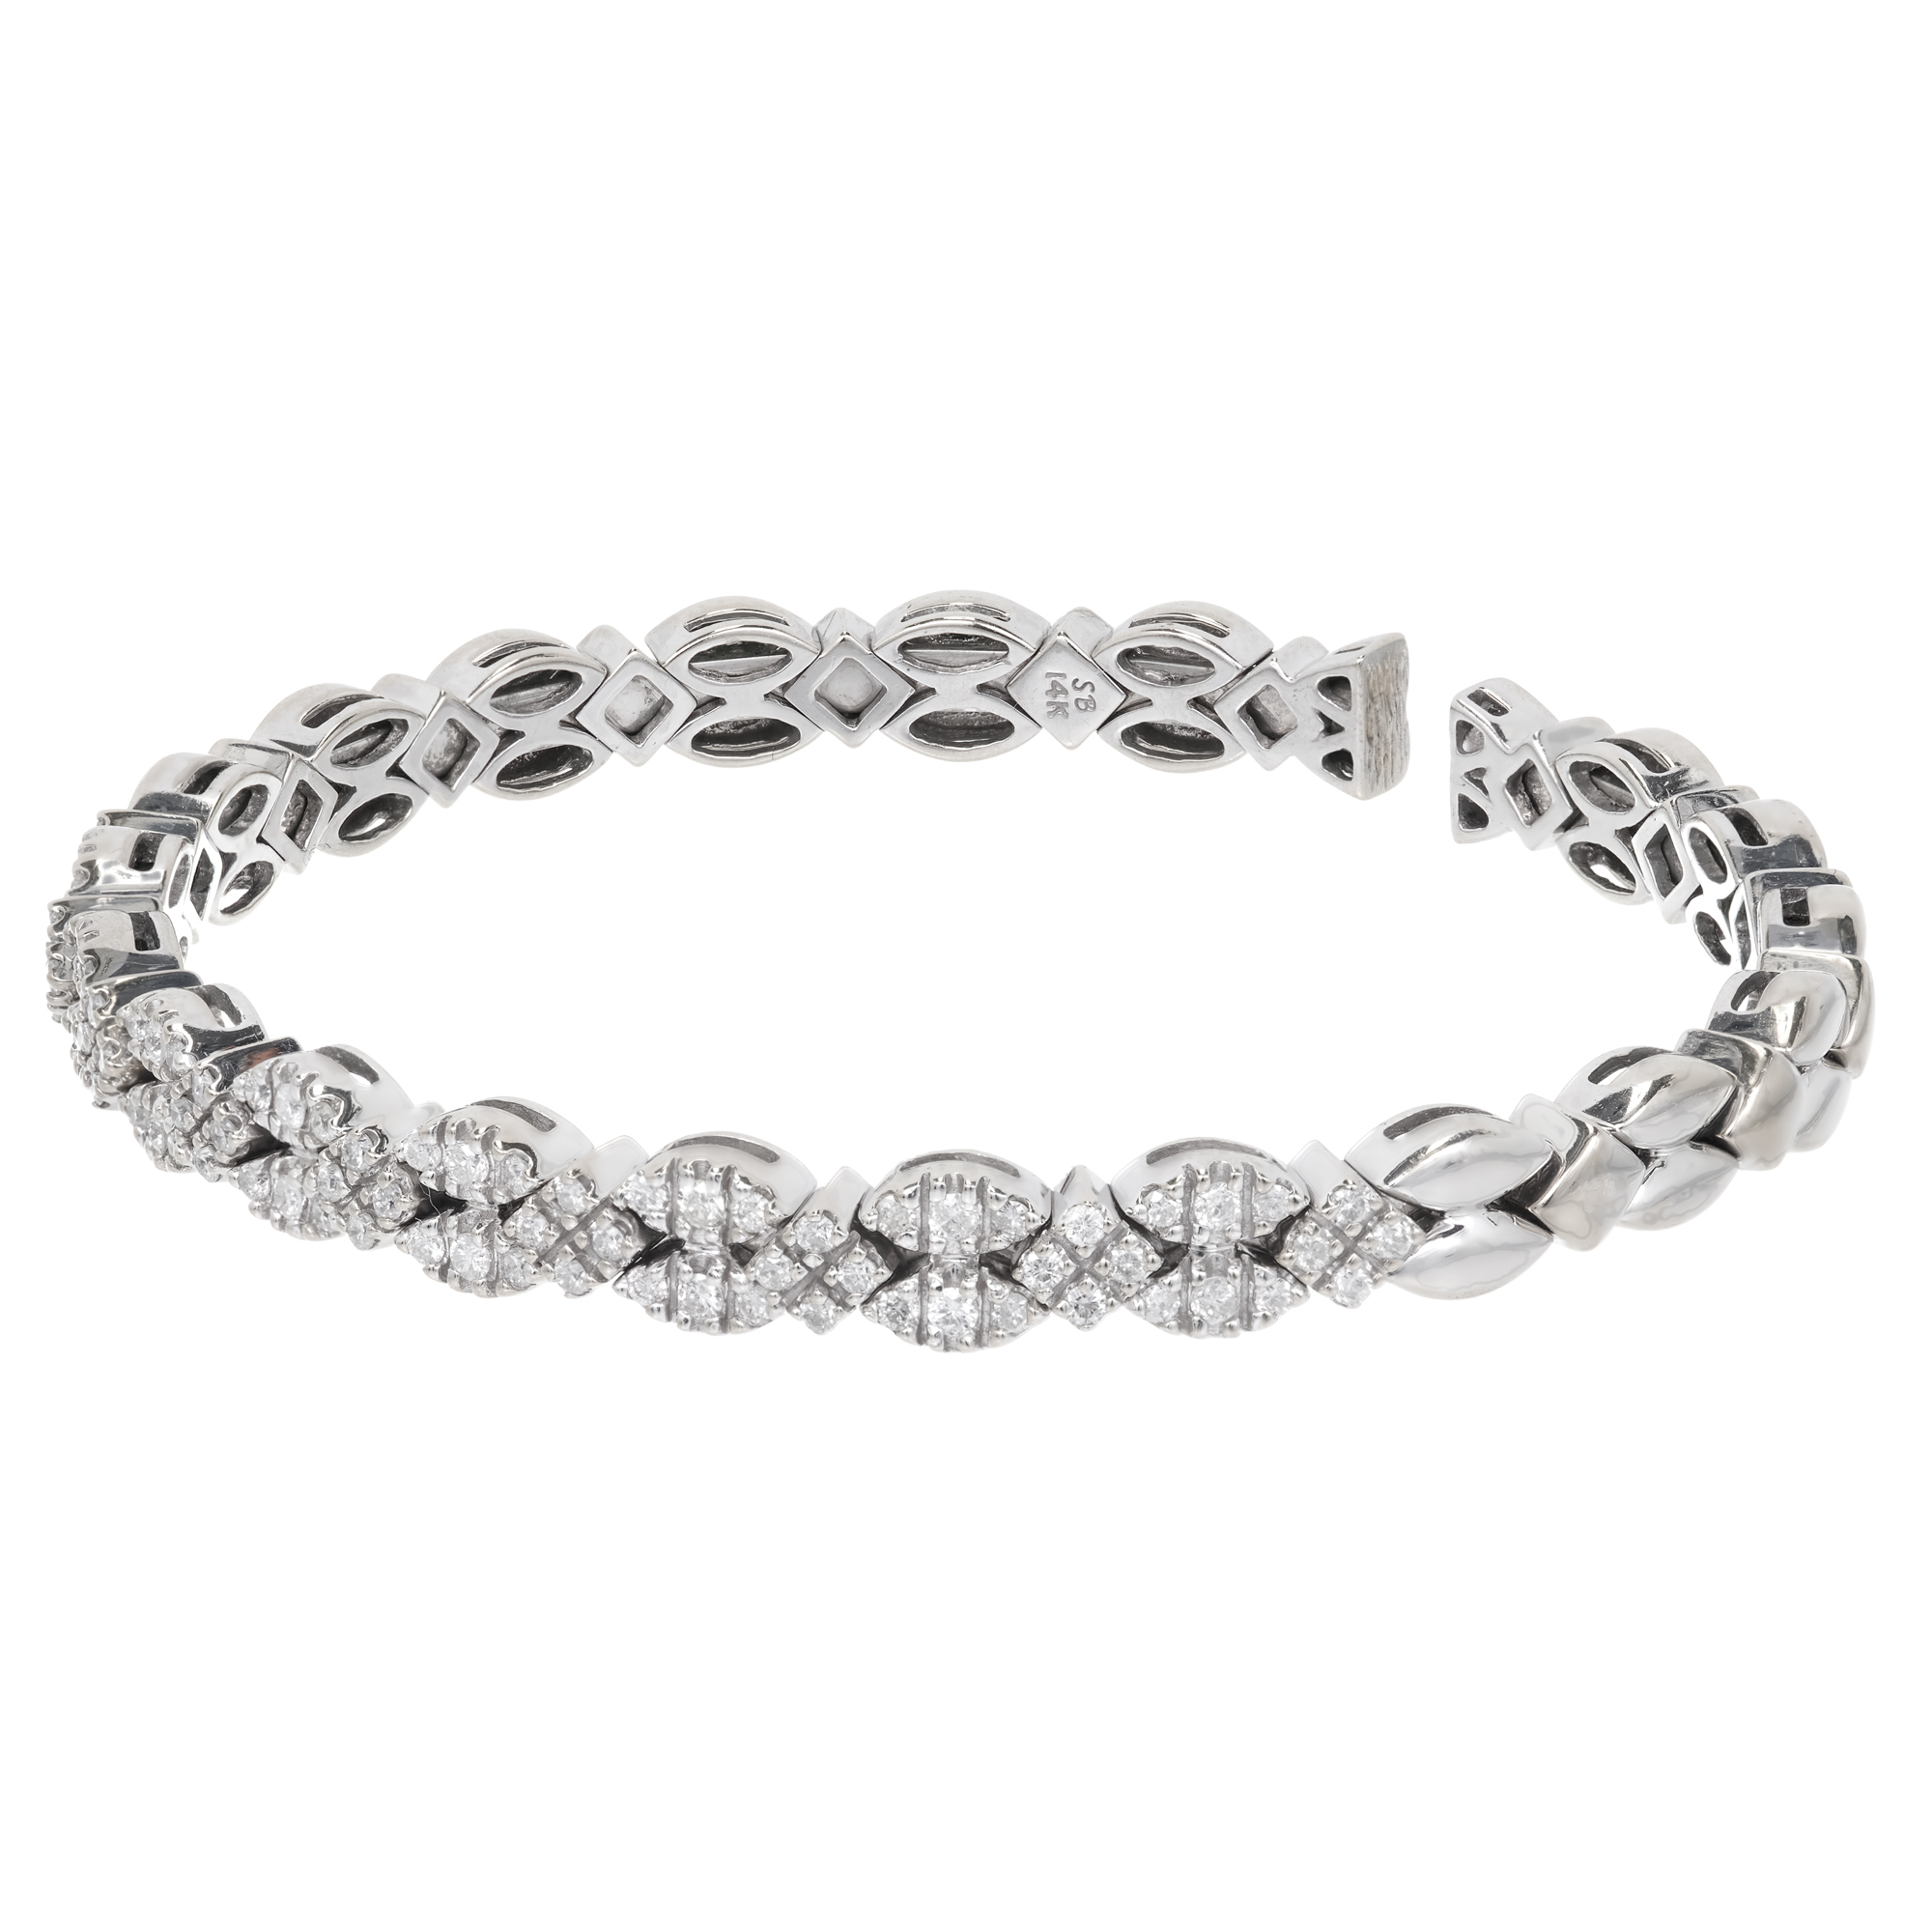 "Image of ""Sonia B 14K White Gold & 1.75ct. Diamond Flex Bracelet"""